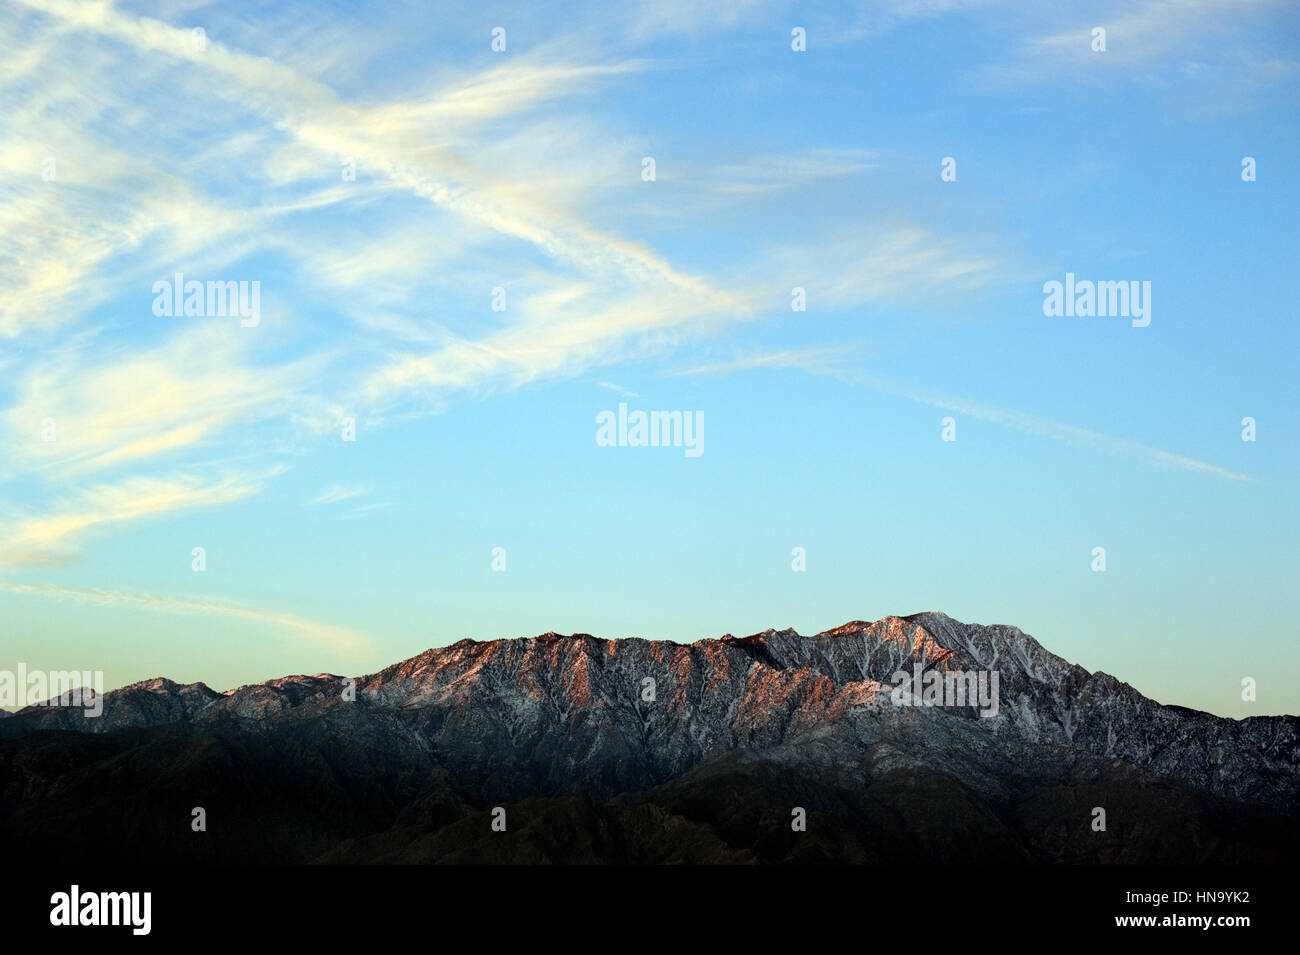 Mountains with snow at dawn near Palm Springs, California - Stock Image